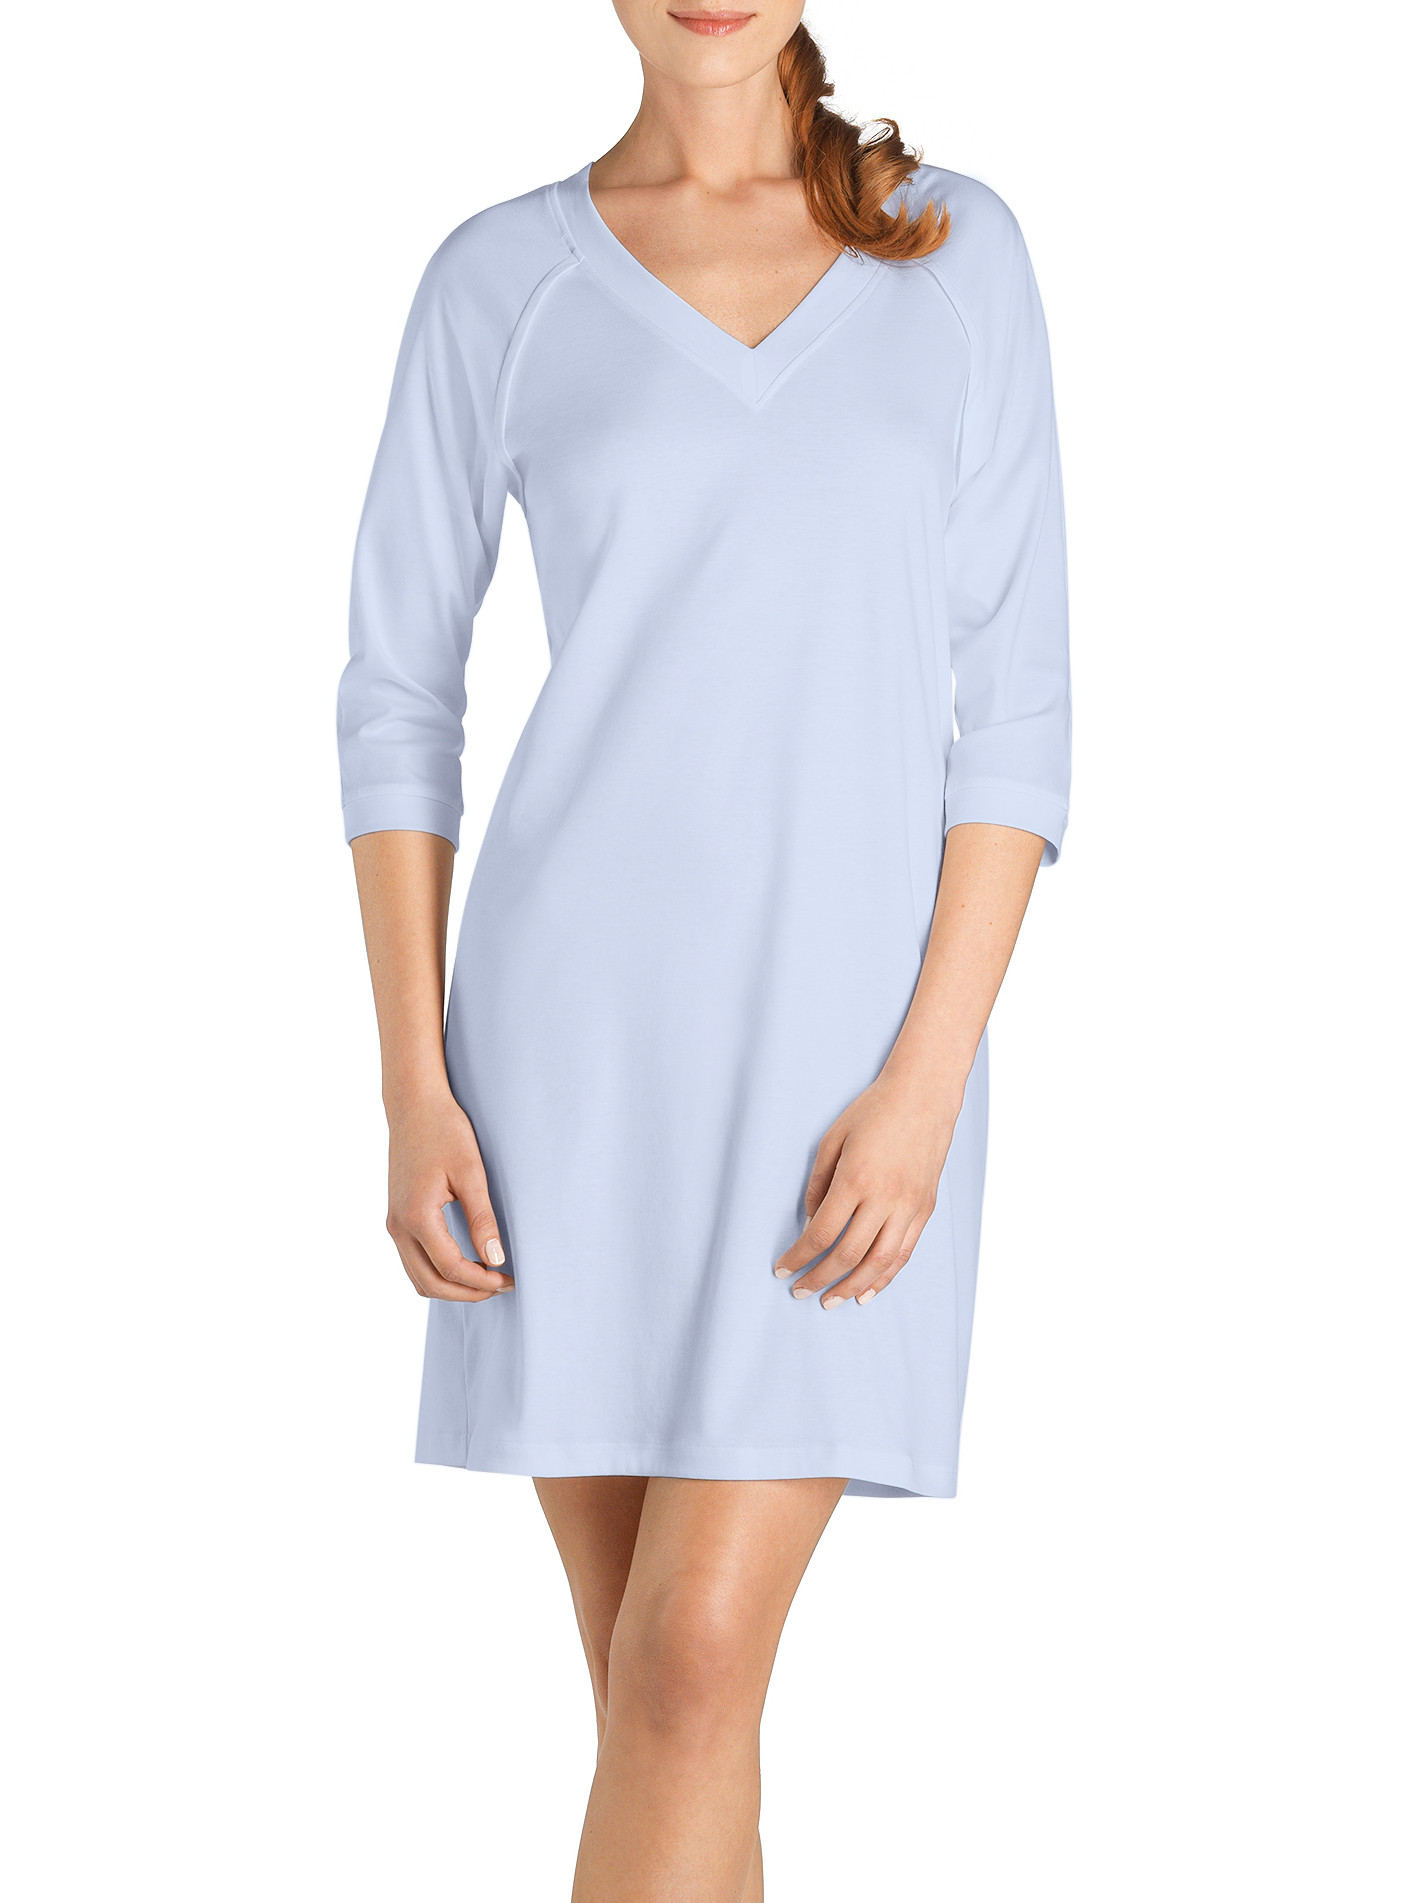 NIGHTDRESS PURE ESSENCE NIGHT